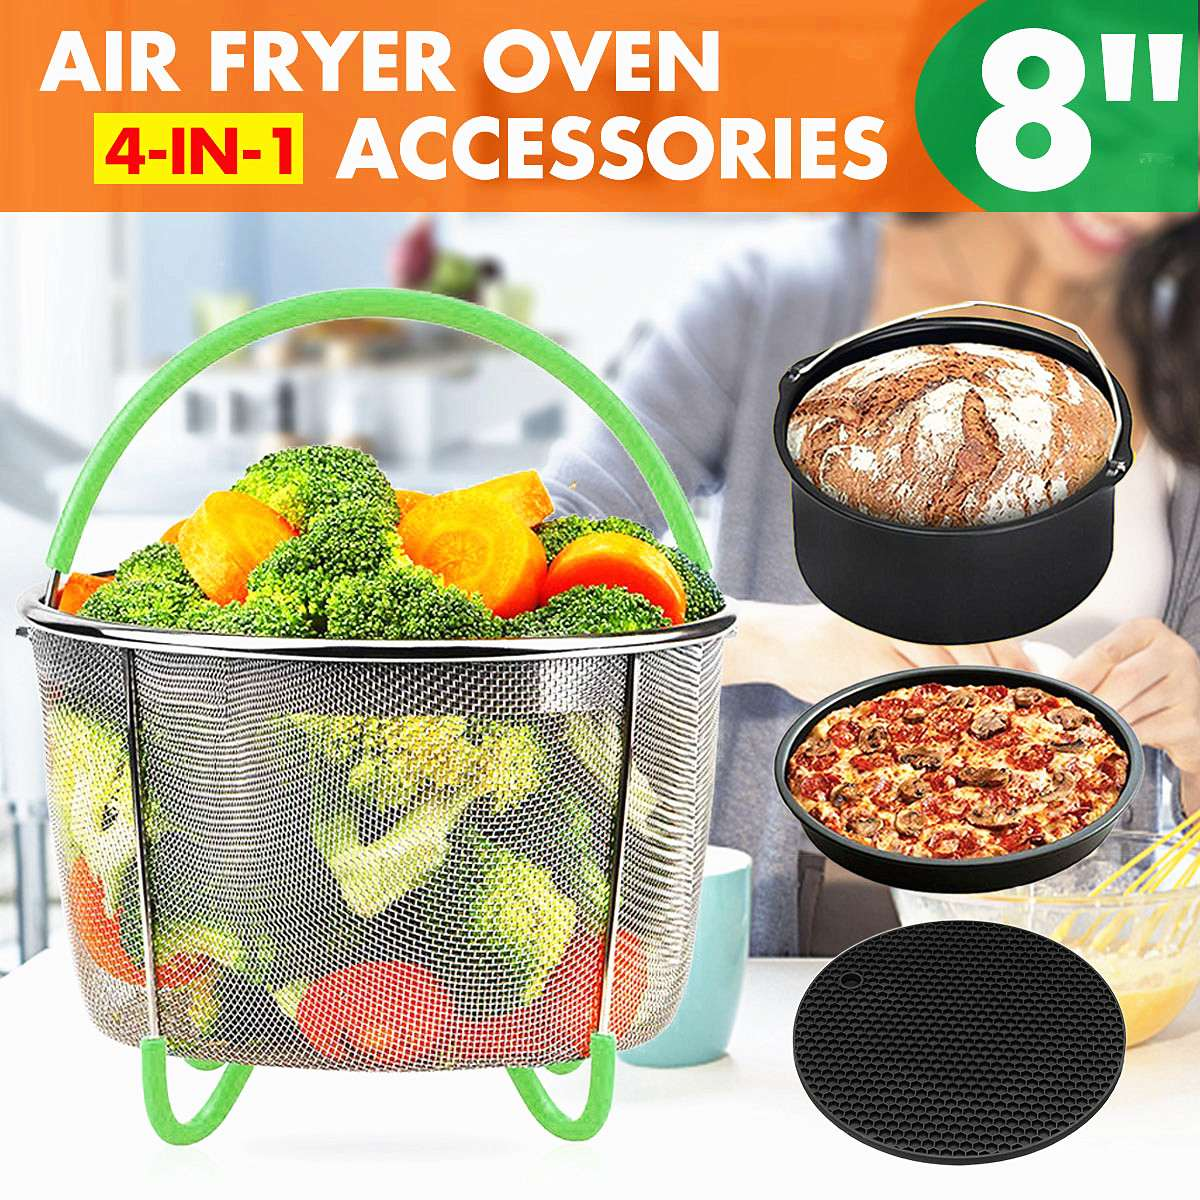 4-IN-1 8 Air Fryer Oven Accessories Chips Baking Pan Set Cooking Tool Baking Kitchen Tools For 4.2-6.8QT Air Fryer Oven4-IN-1 8 Air Fryer Oven Accessories Chips Baking Pan Set Cooking Tool Baking Kitchen Tools For 4.2-6.8QT Air Fryer Oven